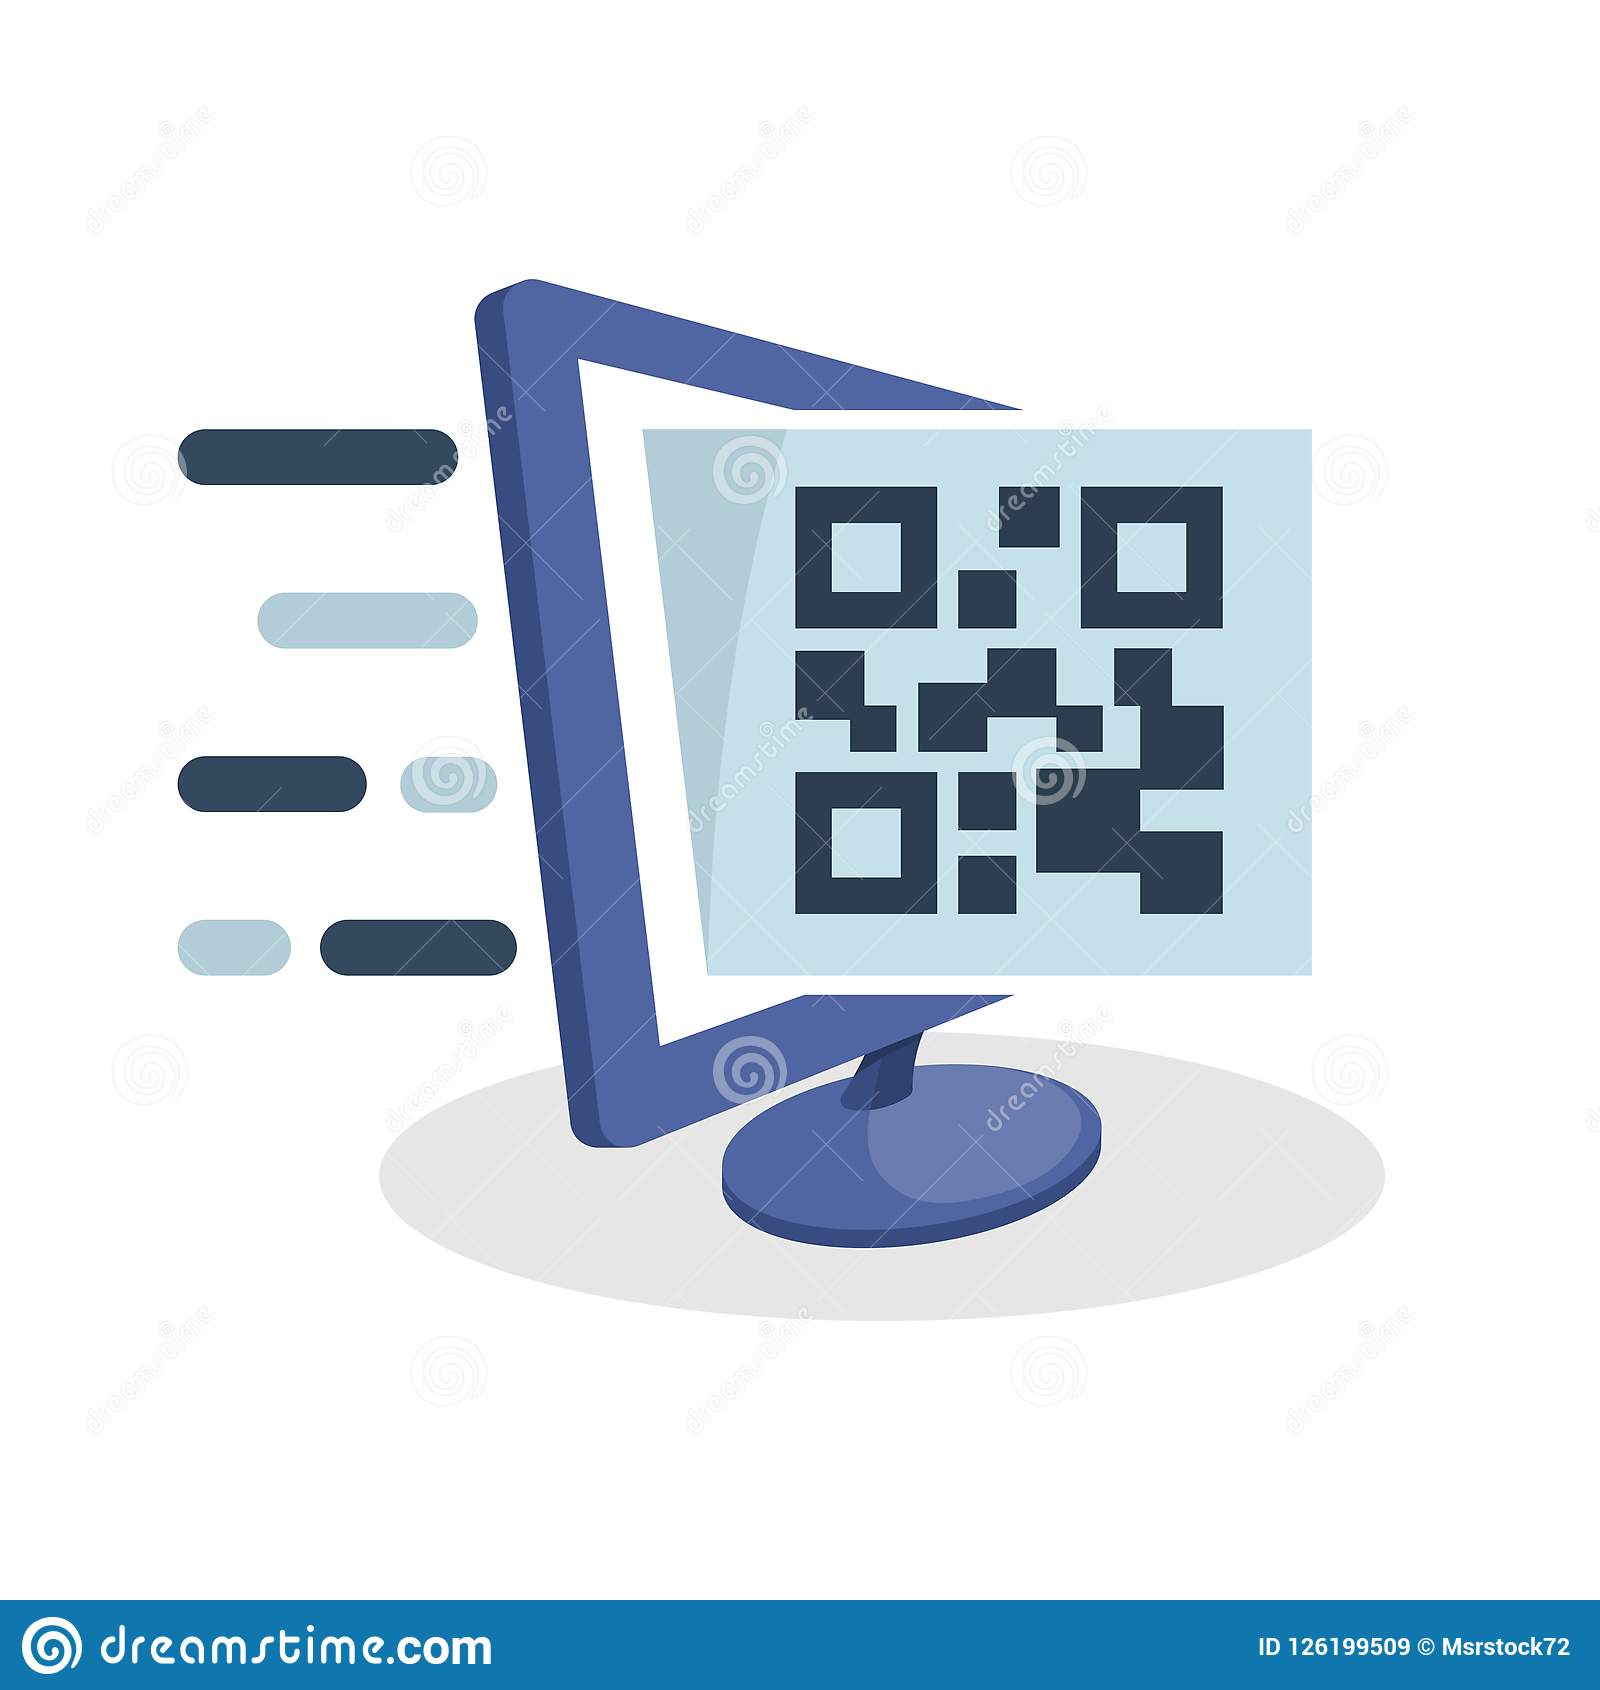 Vector Icon Illustration With Digital Media Concept About